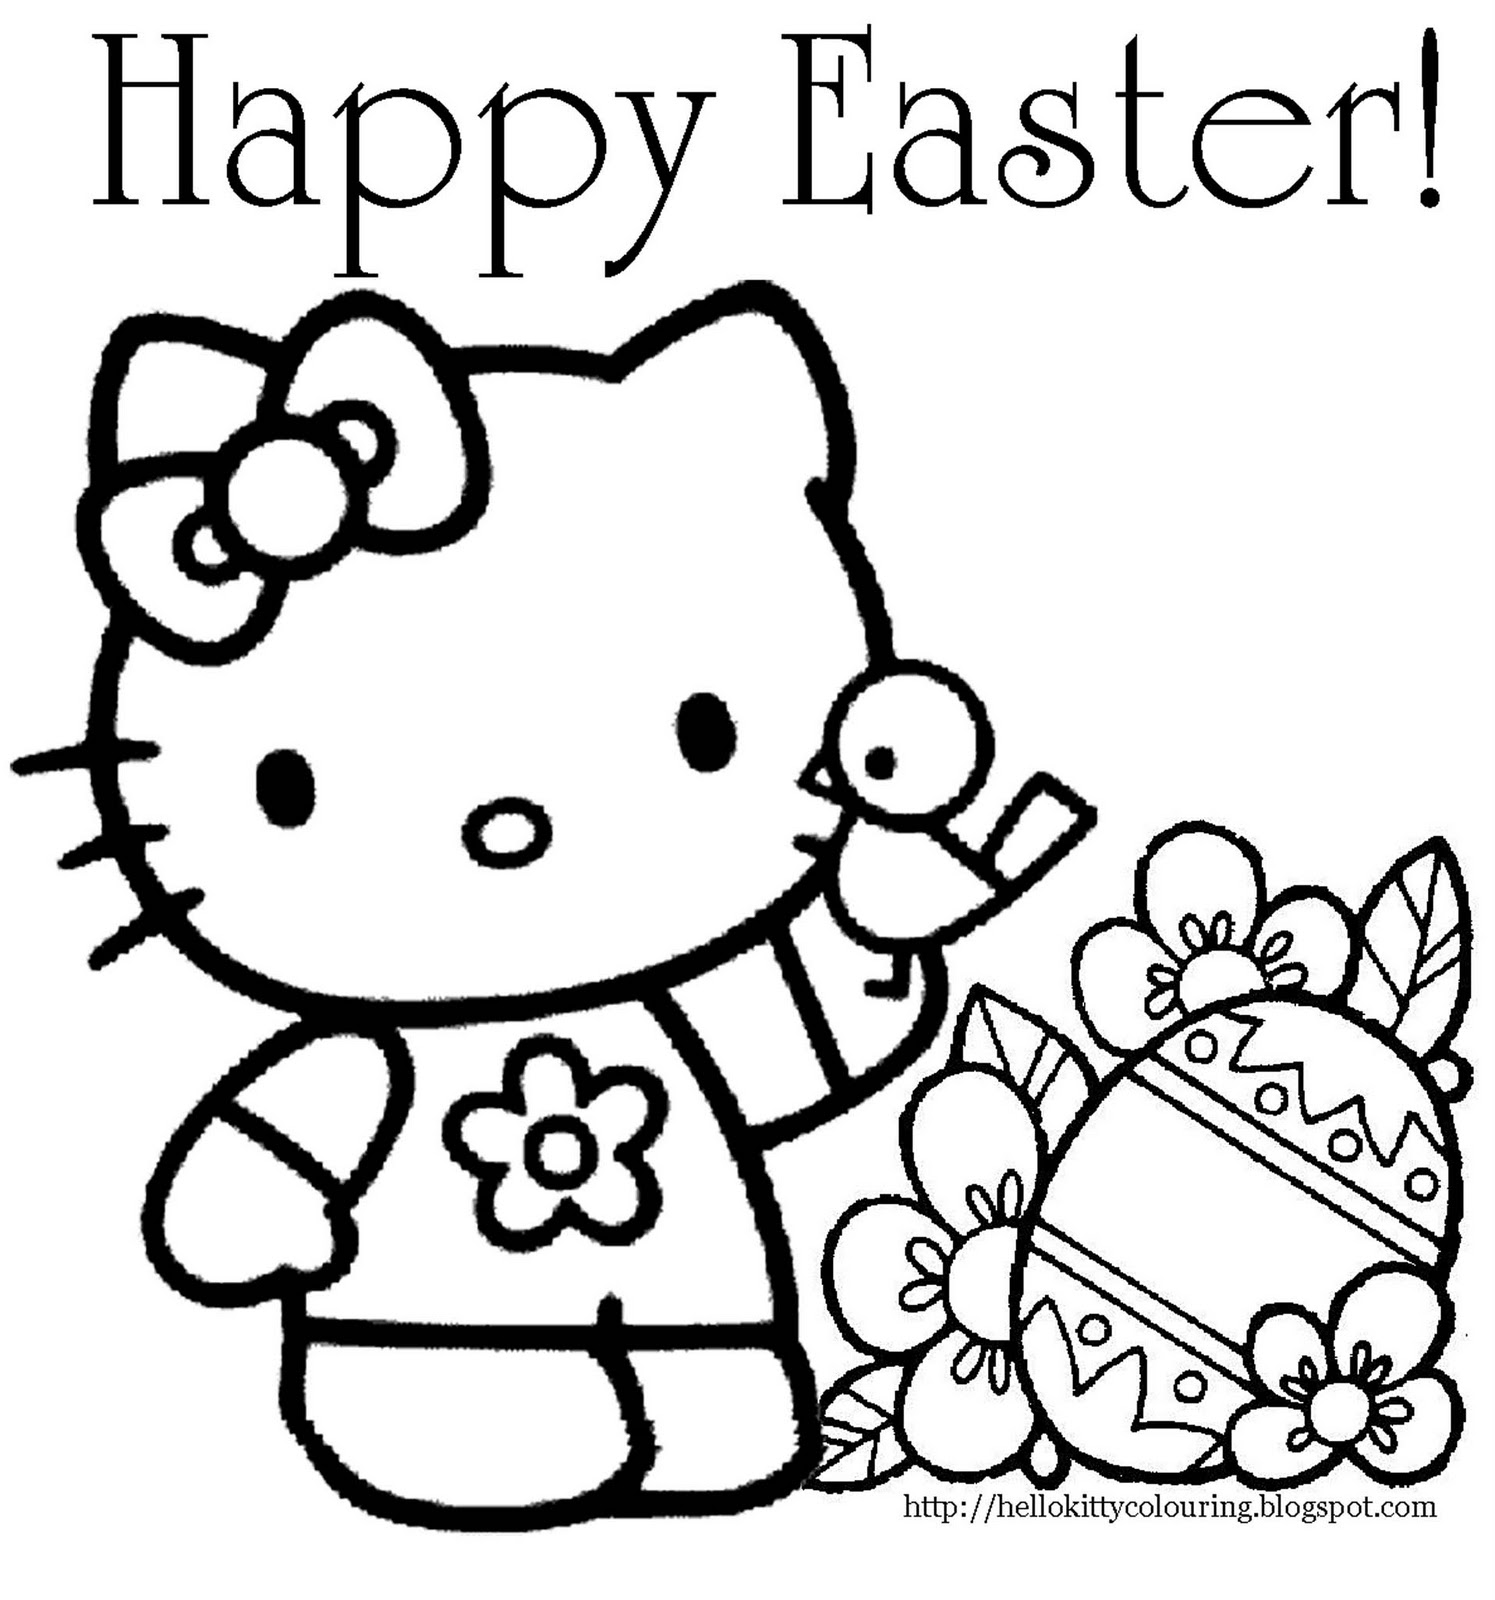 kaboose coloring pages easter cross - photo#34